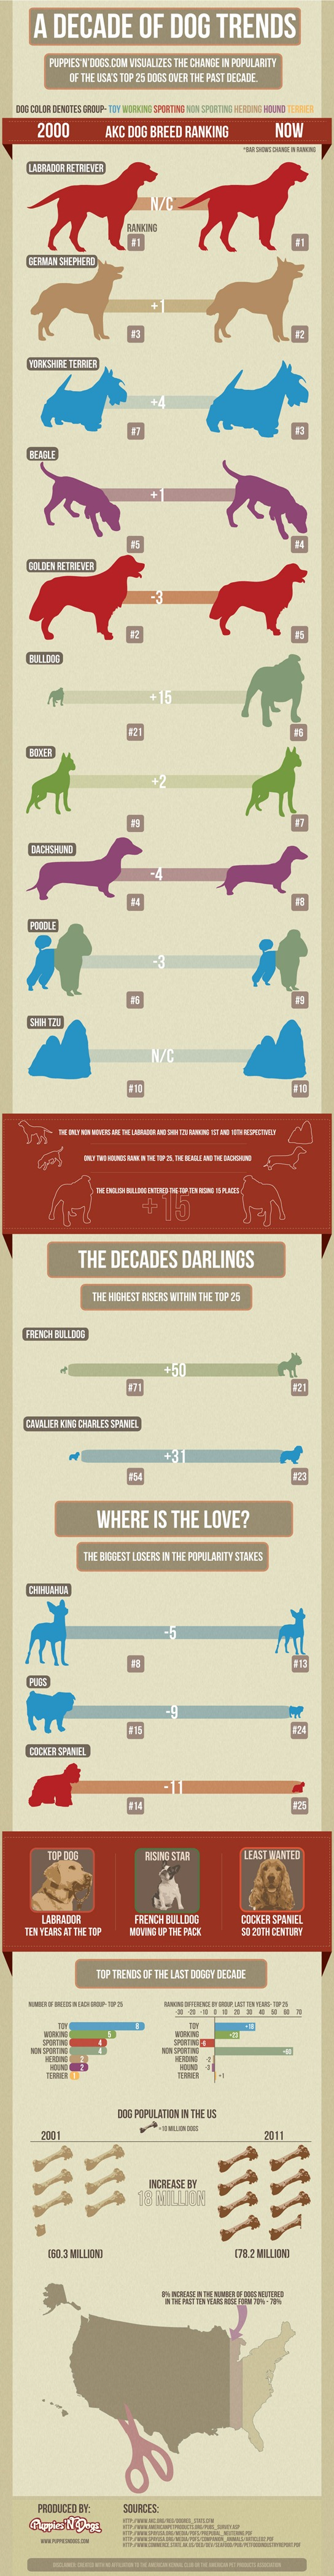 A decade of dog trends